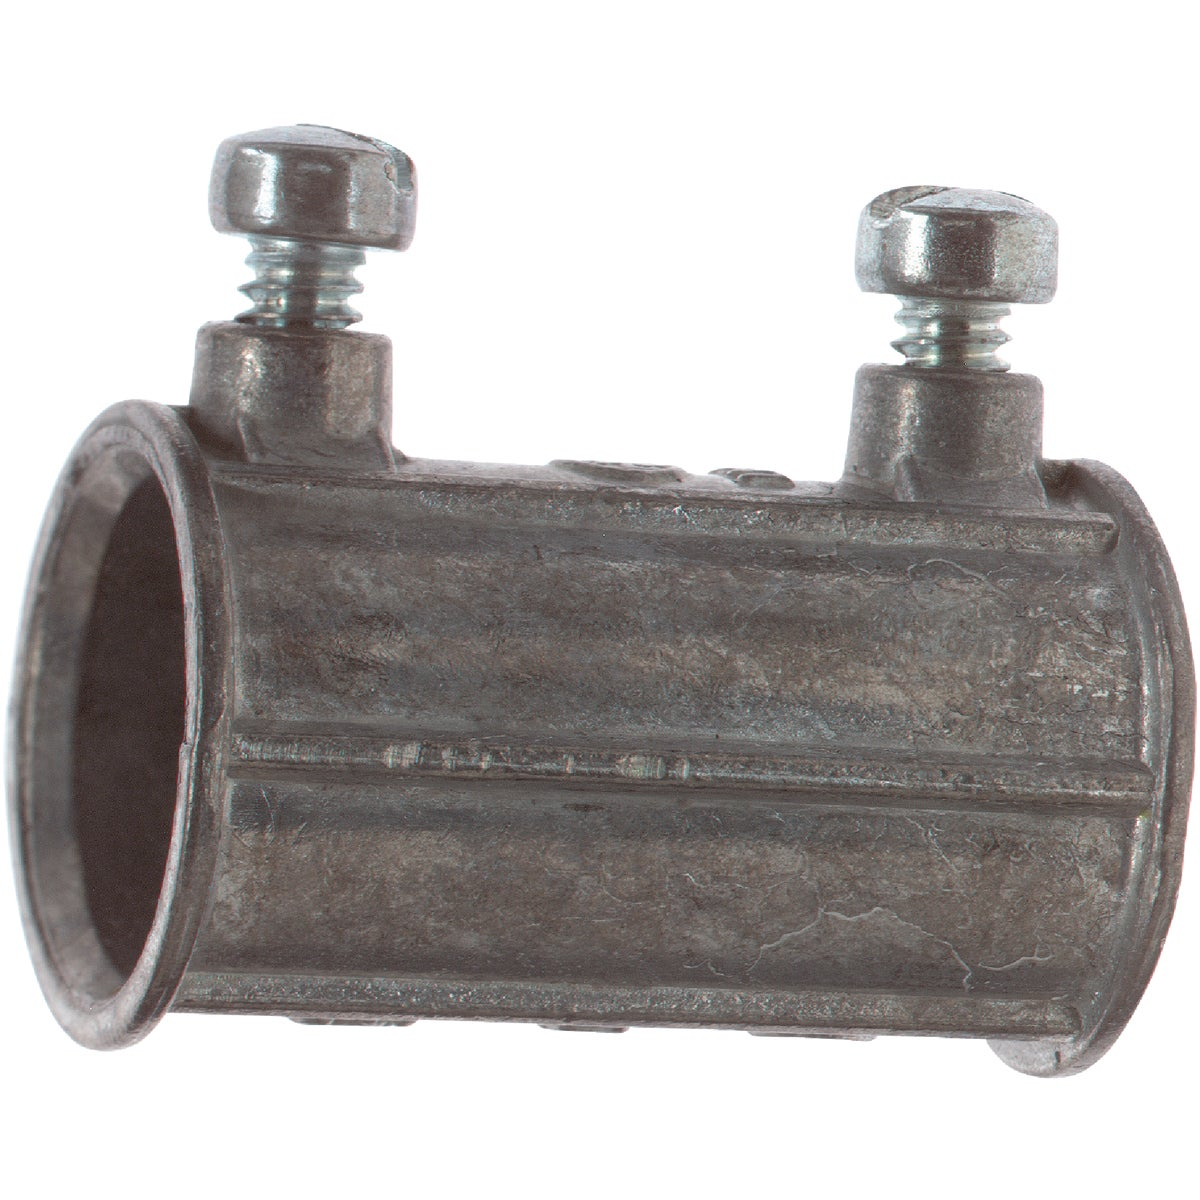 "5PC 3/4"" EMT COUPLING"